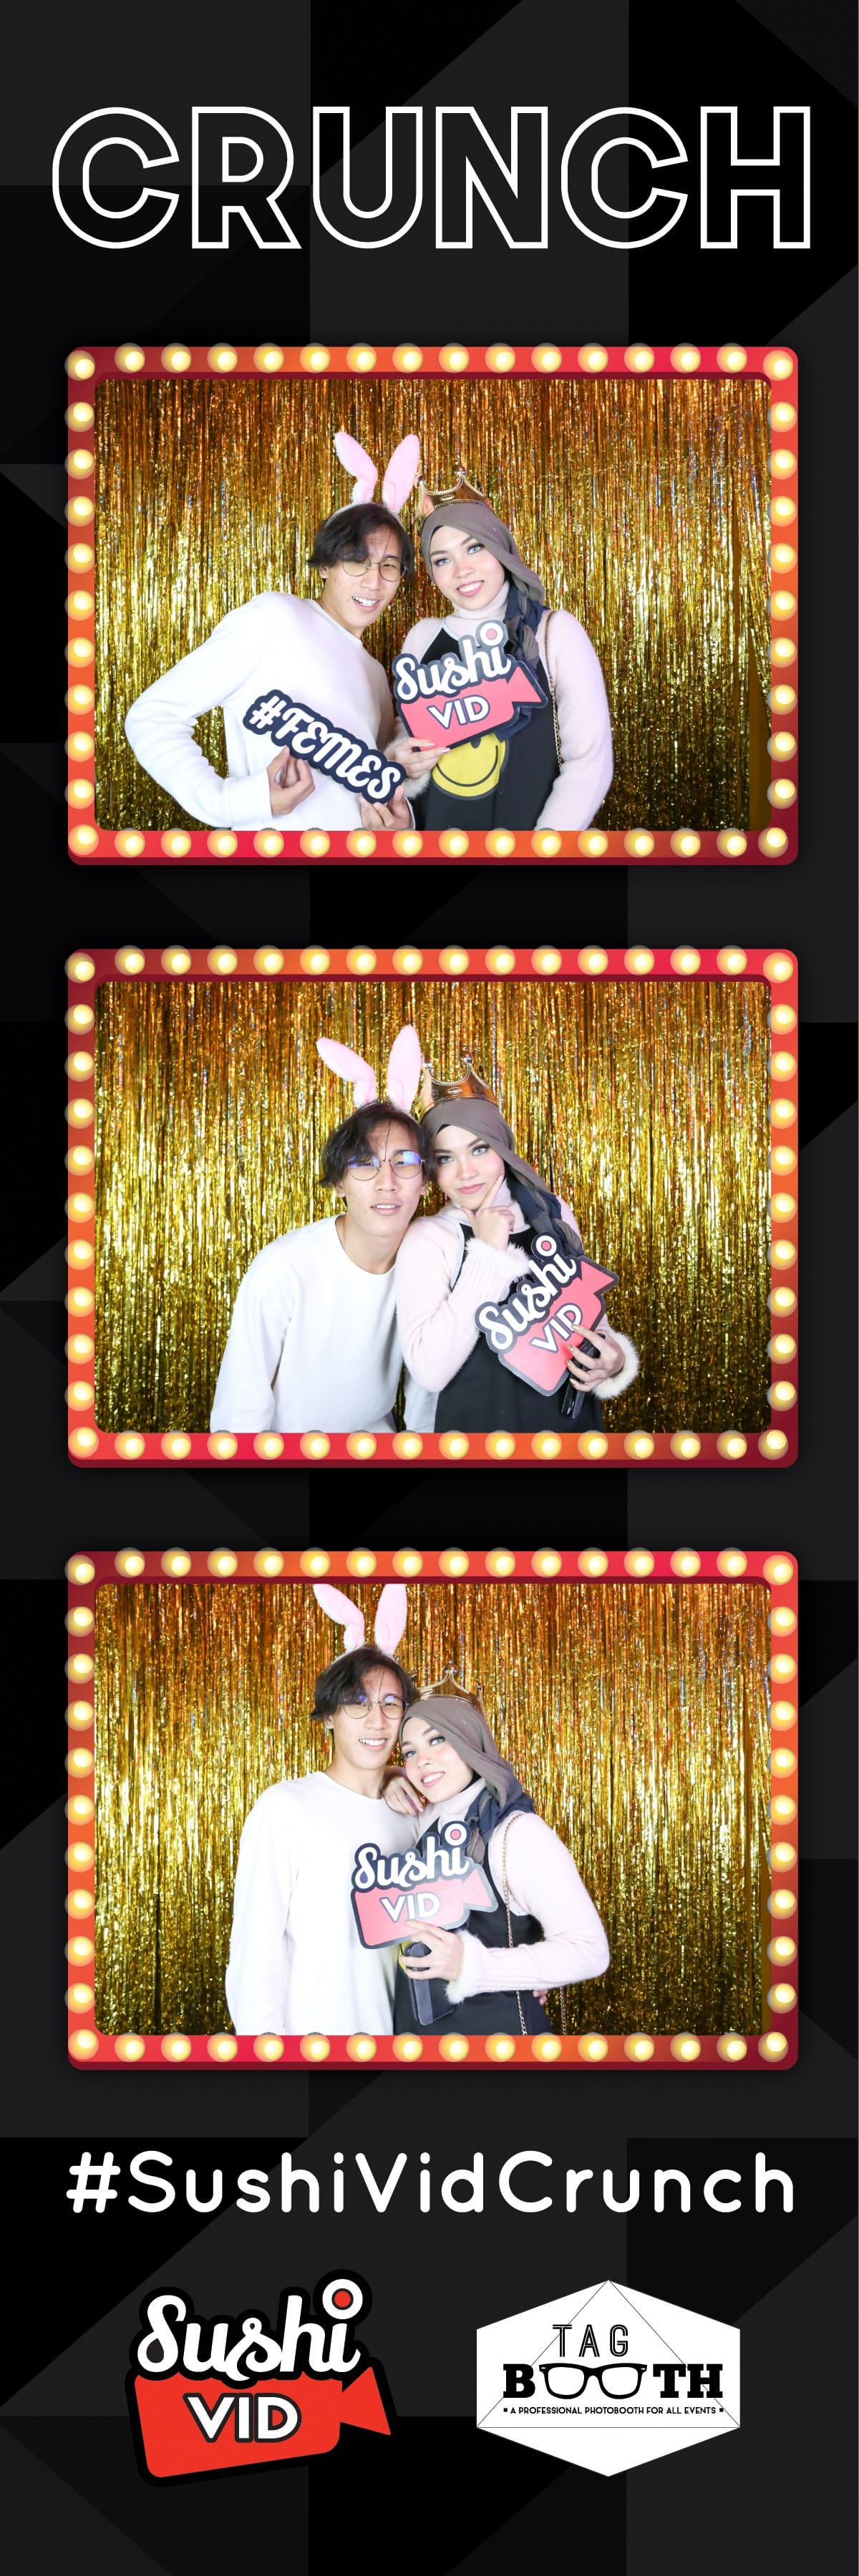 Sushivid+crunch+tagbooth1+27